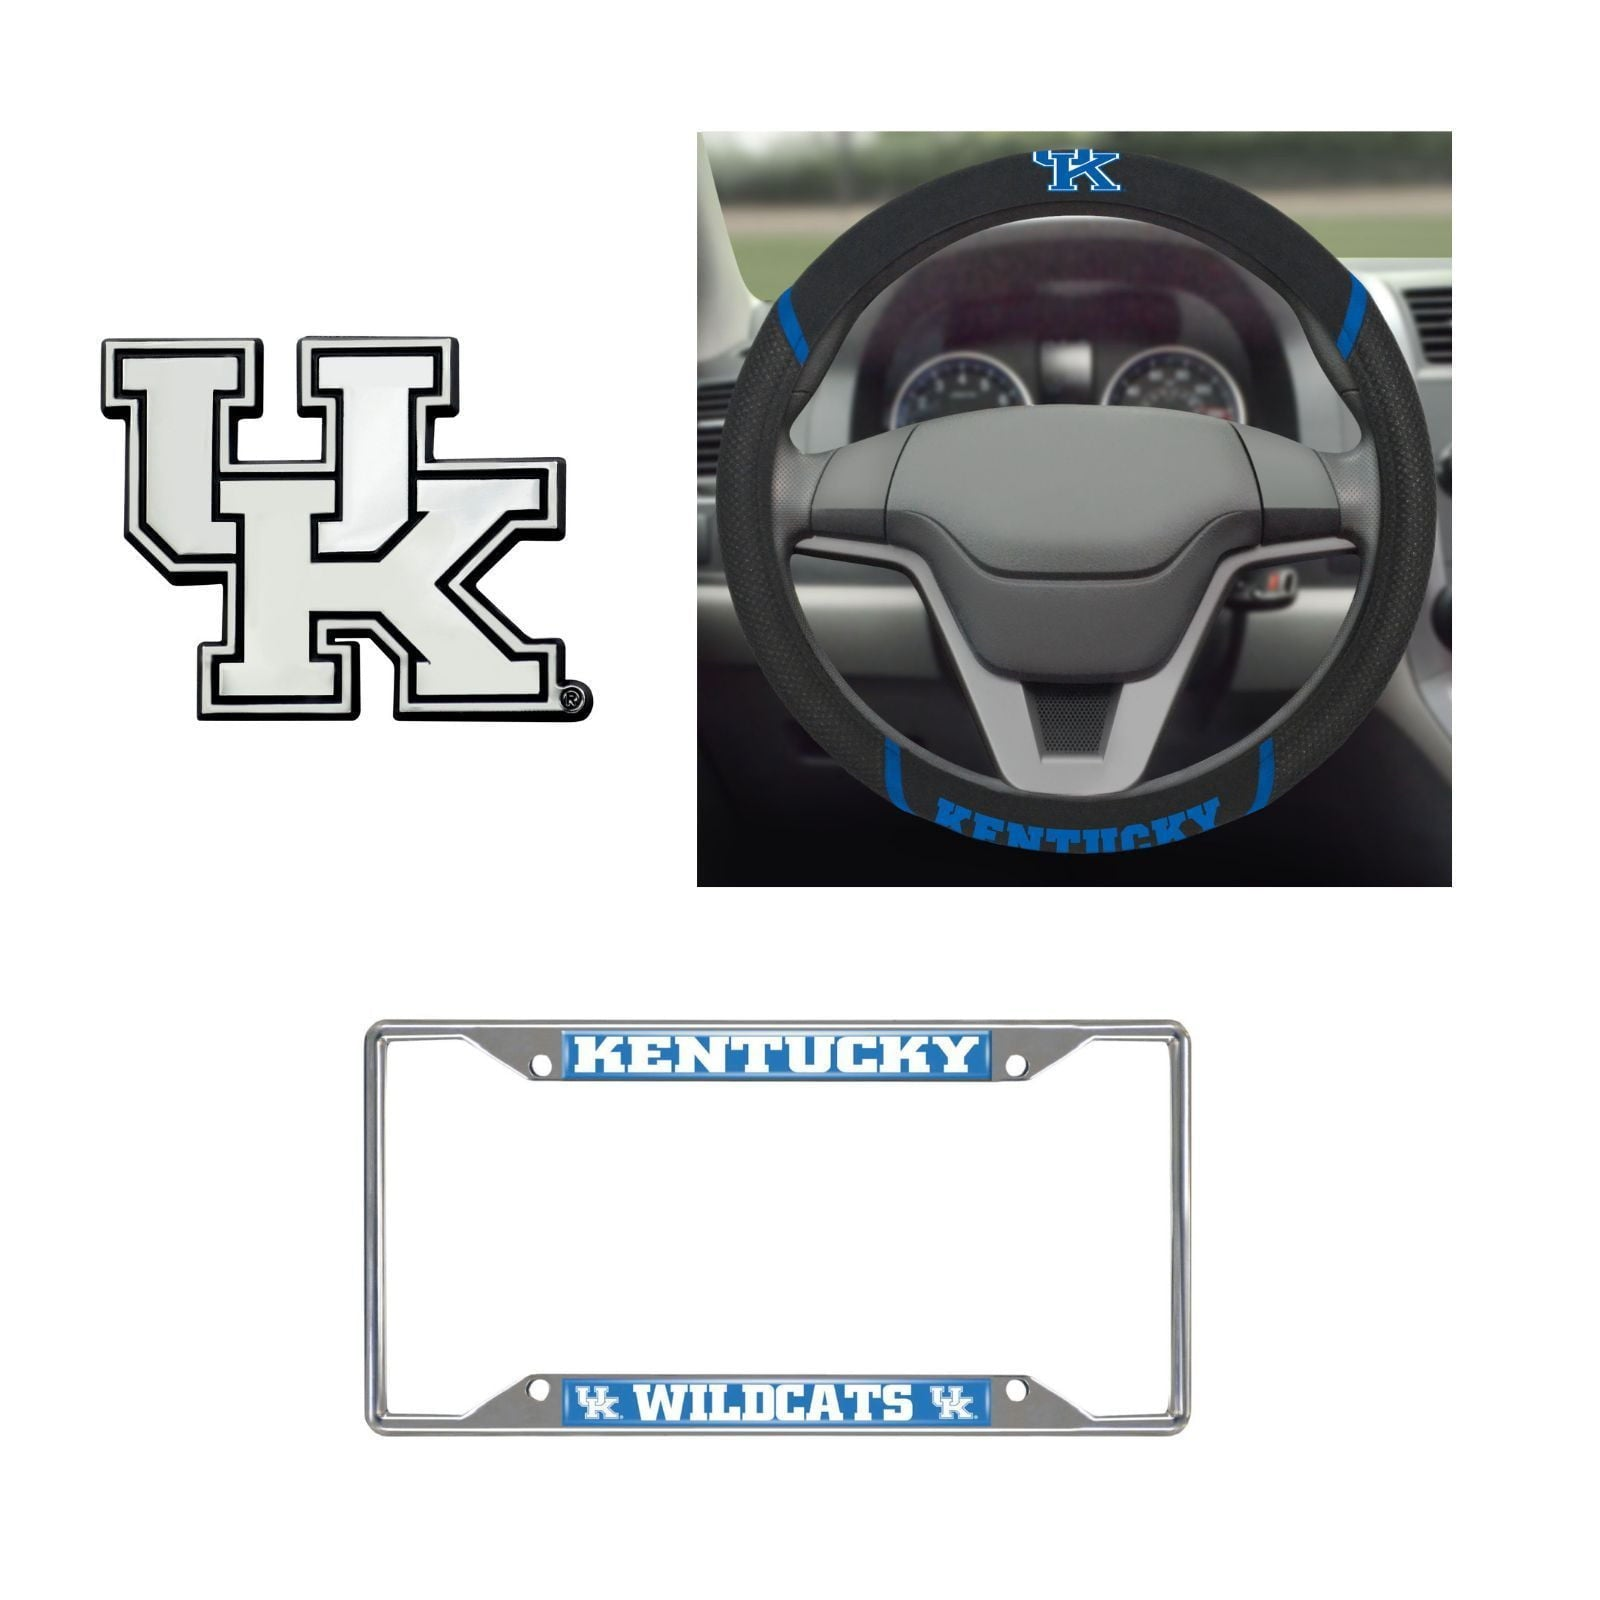 Kentucky Wildcats Steering Wheel Cover, License Plate Frame, 3D Chrome Emblem